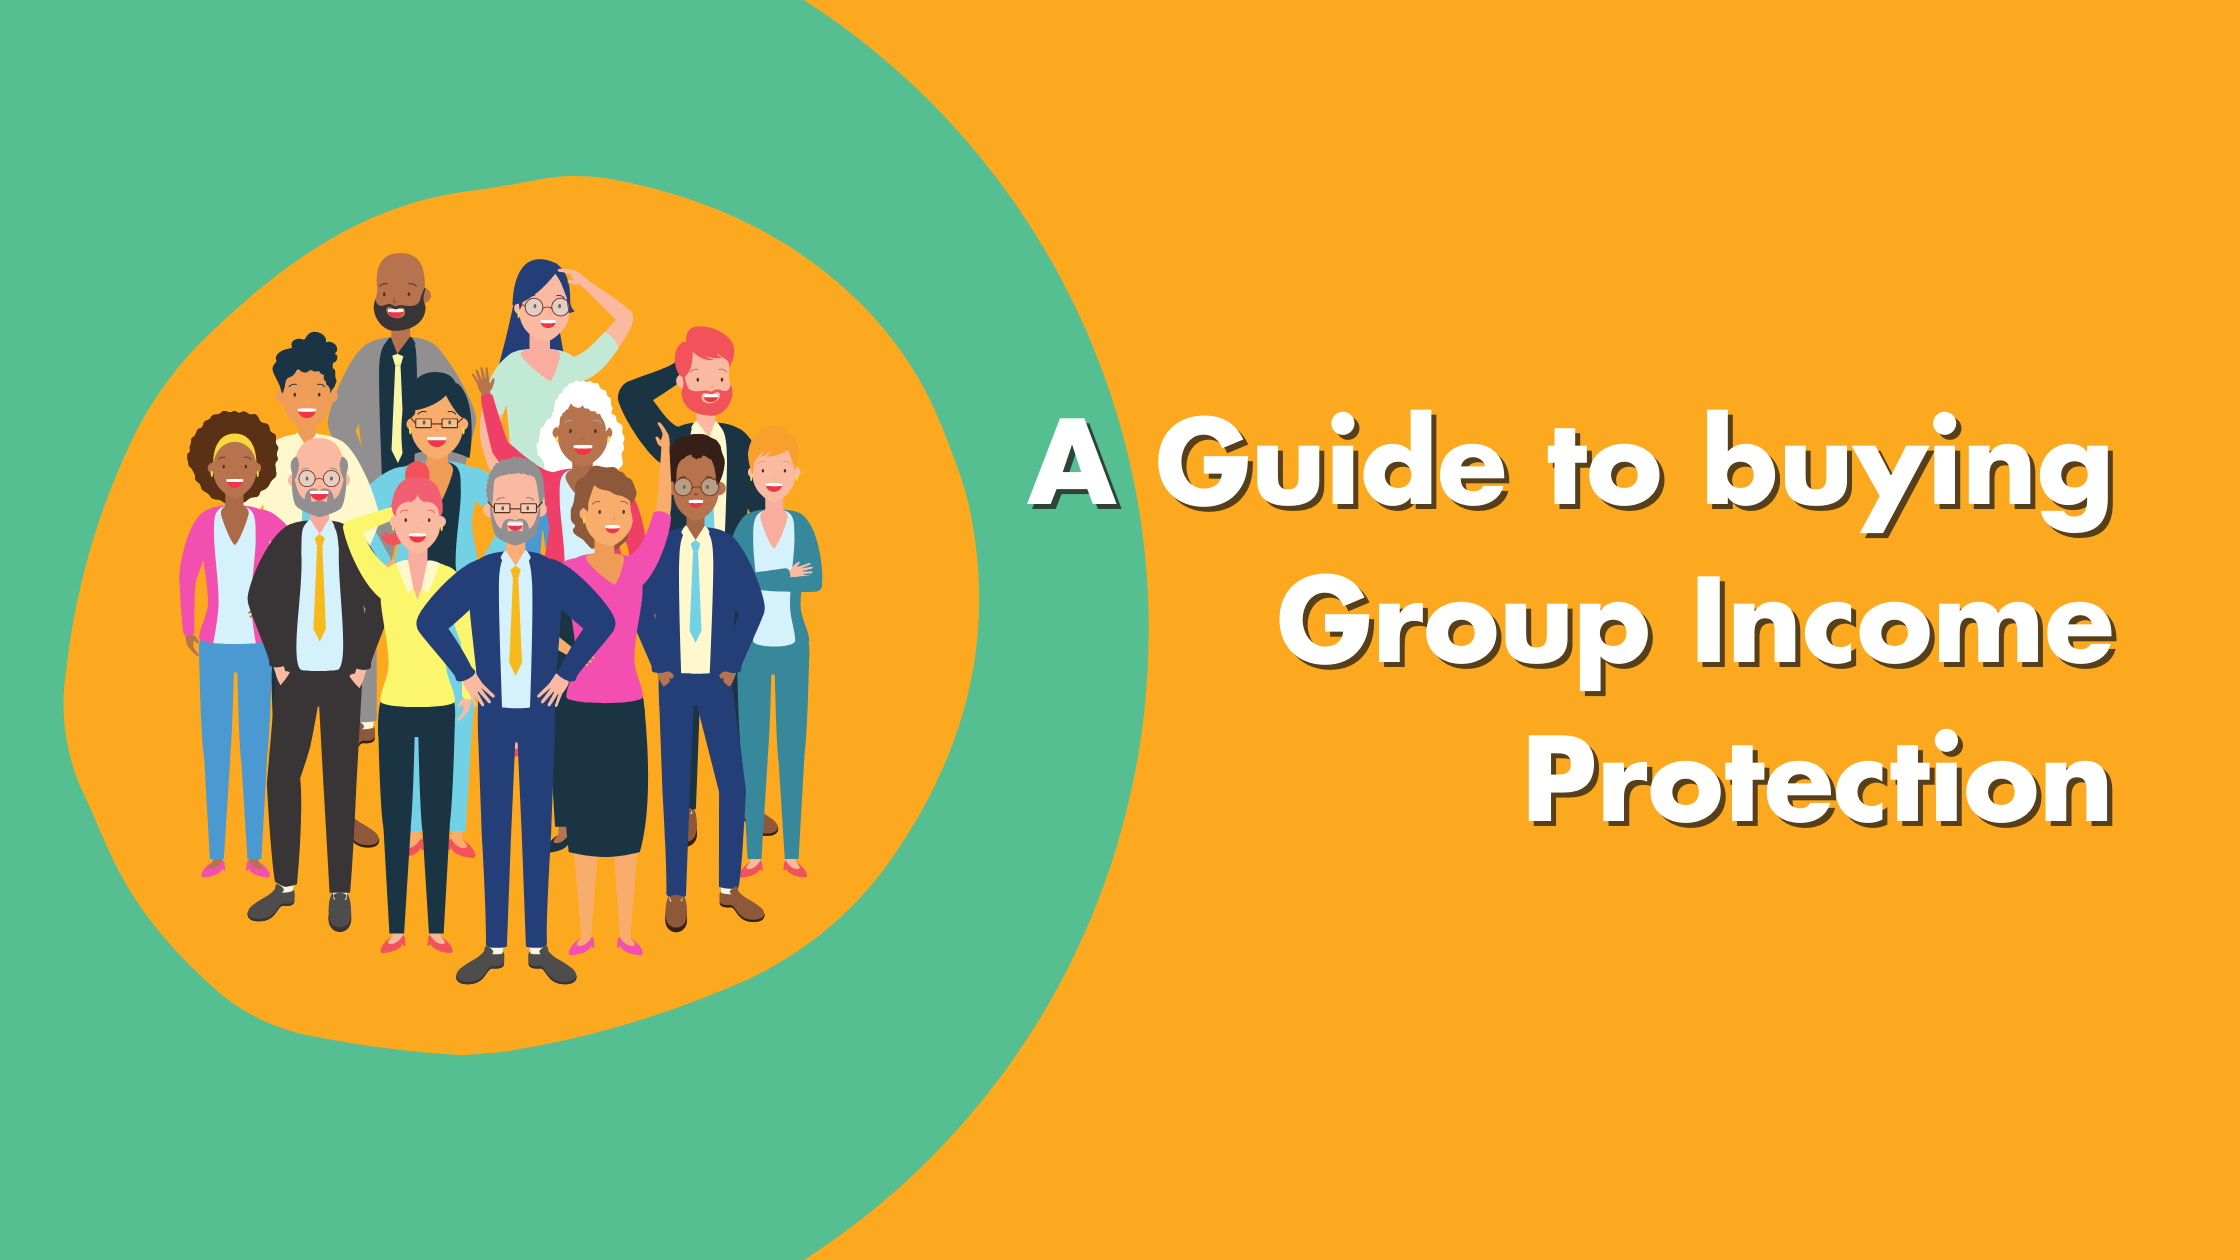 A Guide To Buying Group Income Protection